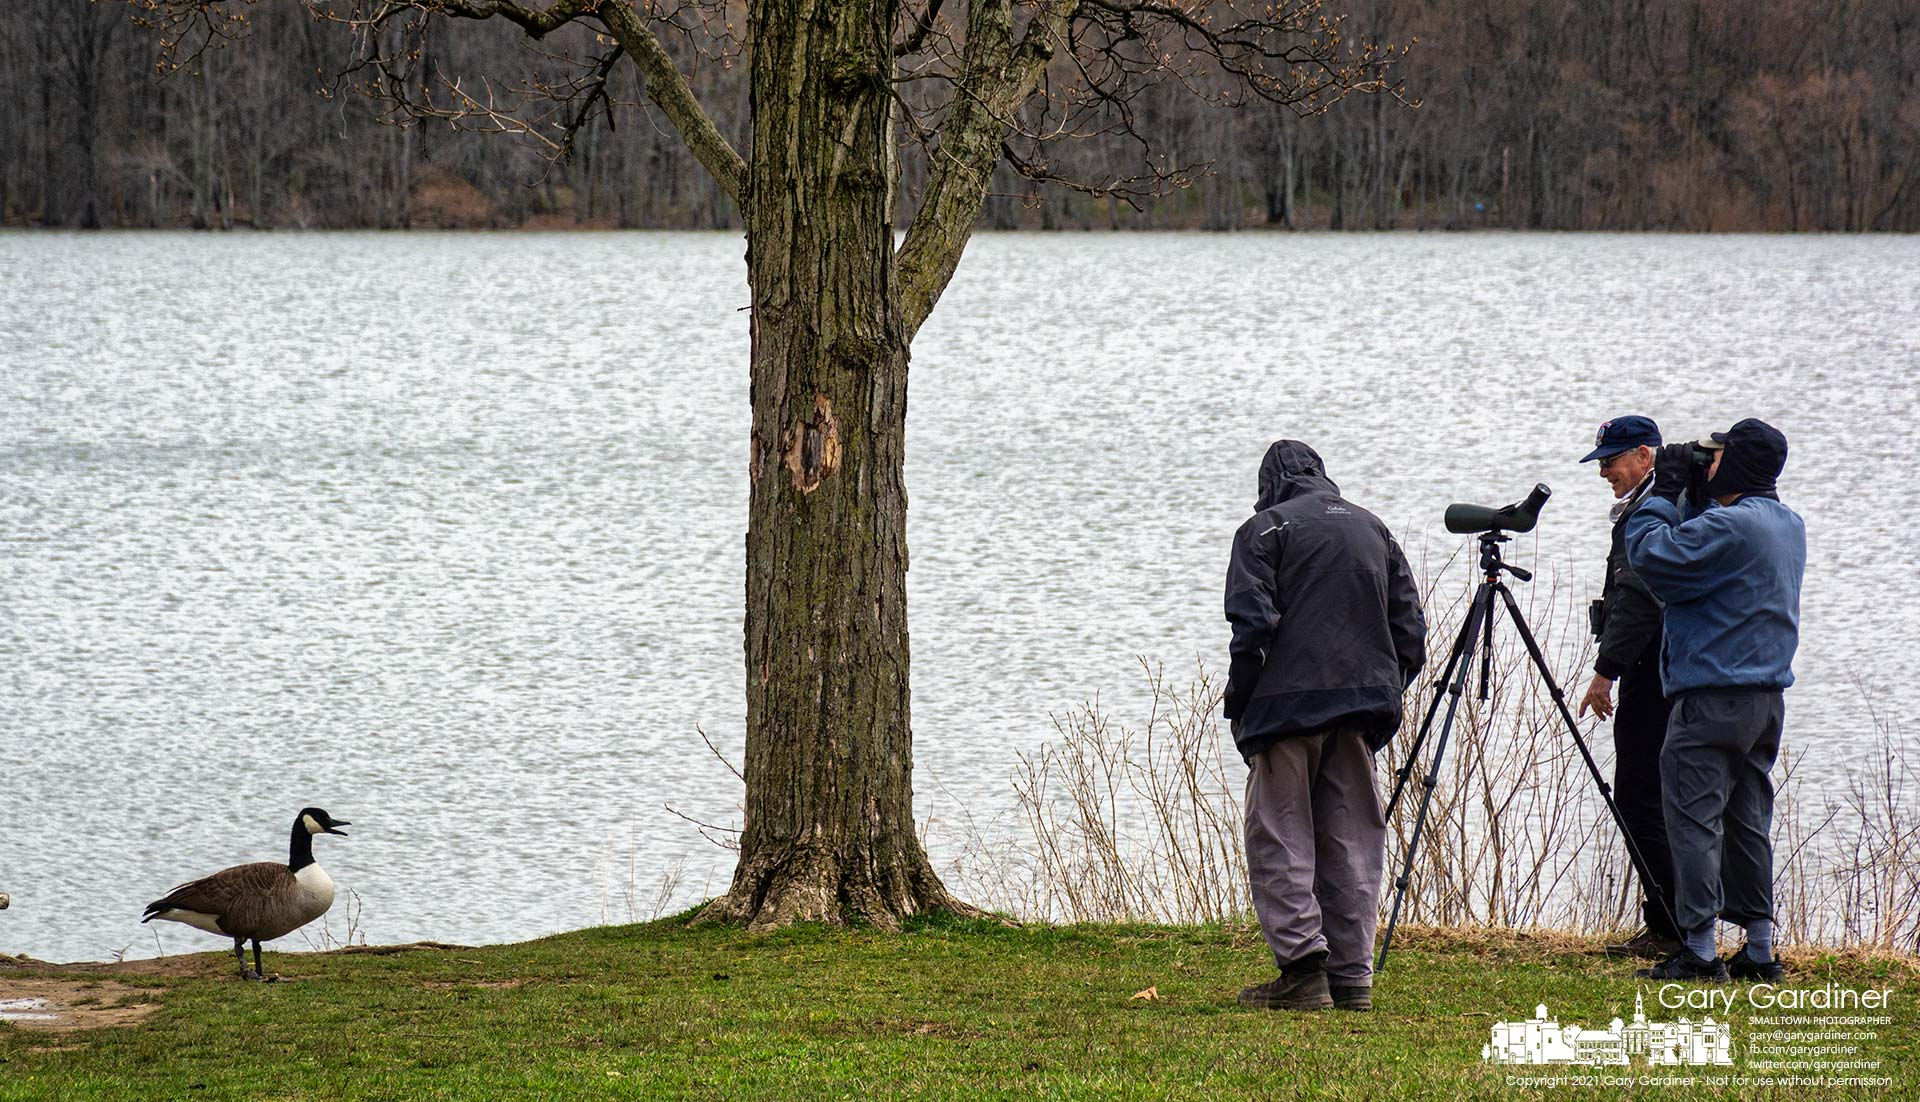 A Canada goose barks at a trio of birdwatchers observing the fowl floating and flying at Hoover Reservoir on a warm Spring morning. My Final Photo for March 31, 2021.